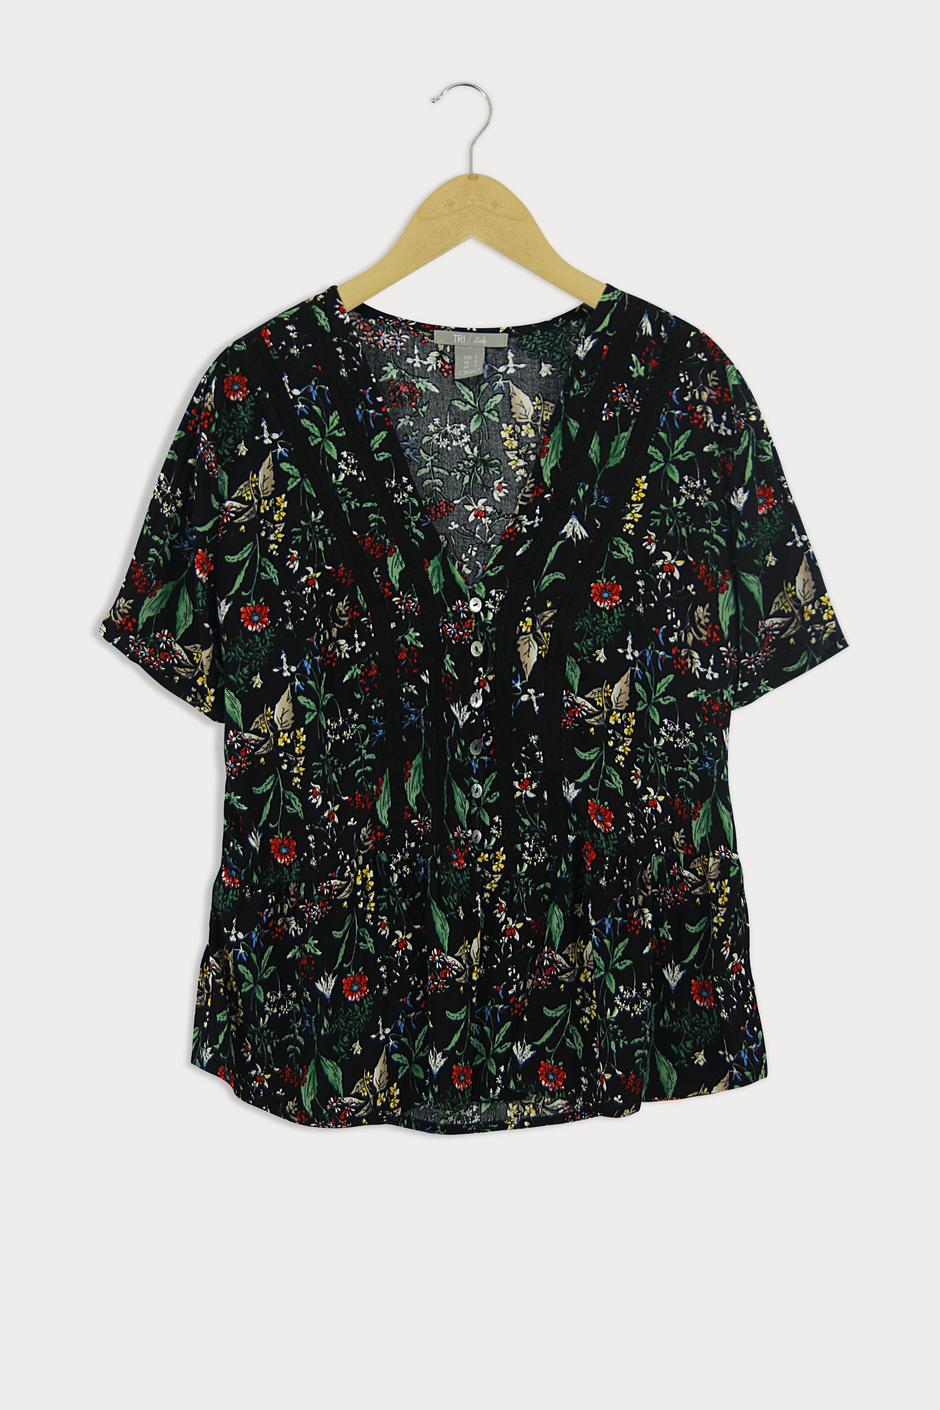 Lady Blouse Floral (Cotton) LBF-4008